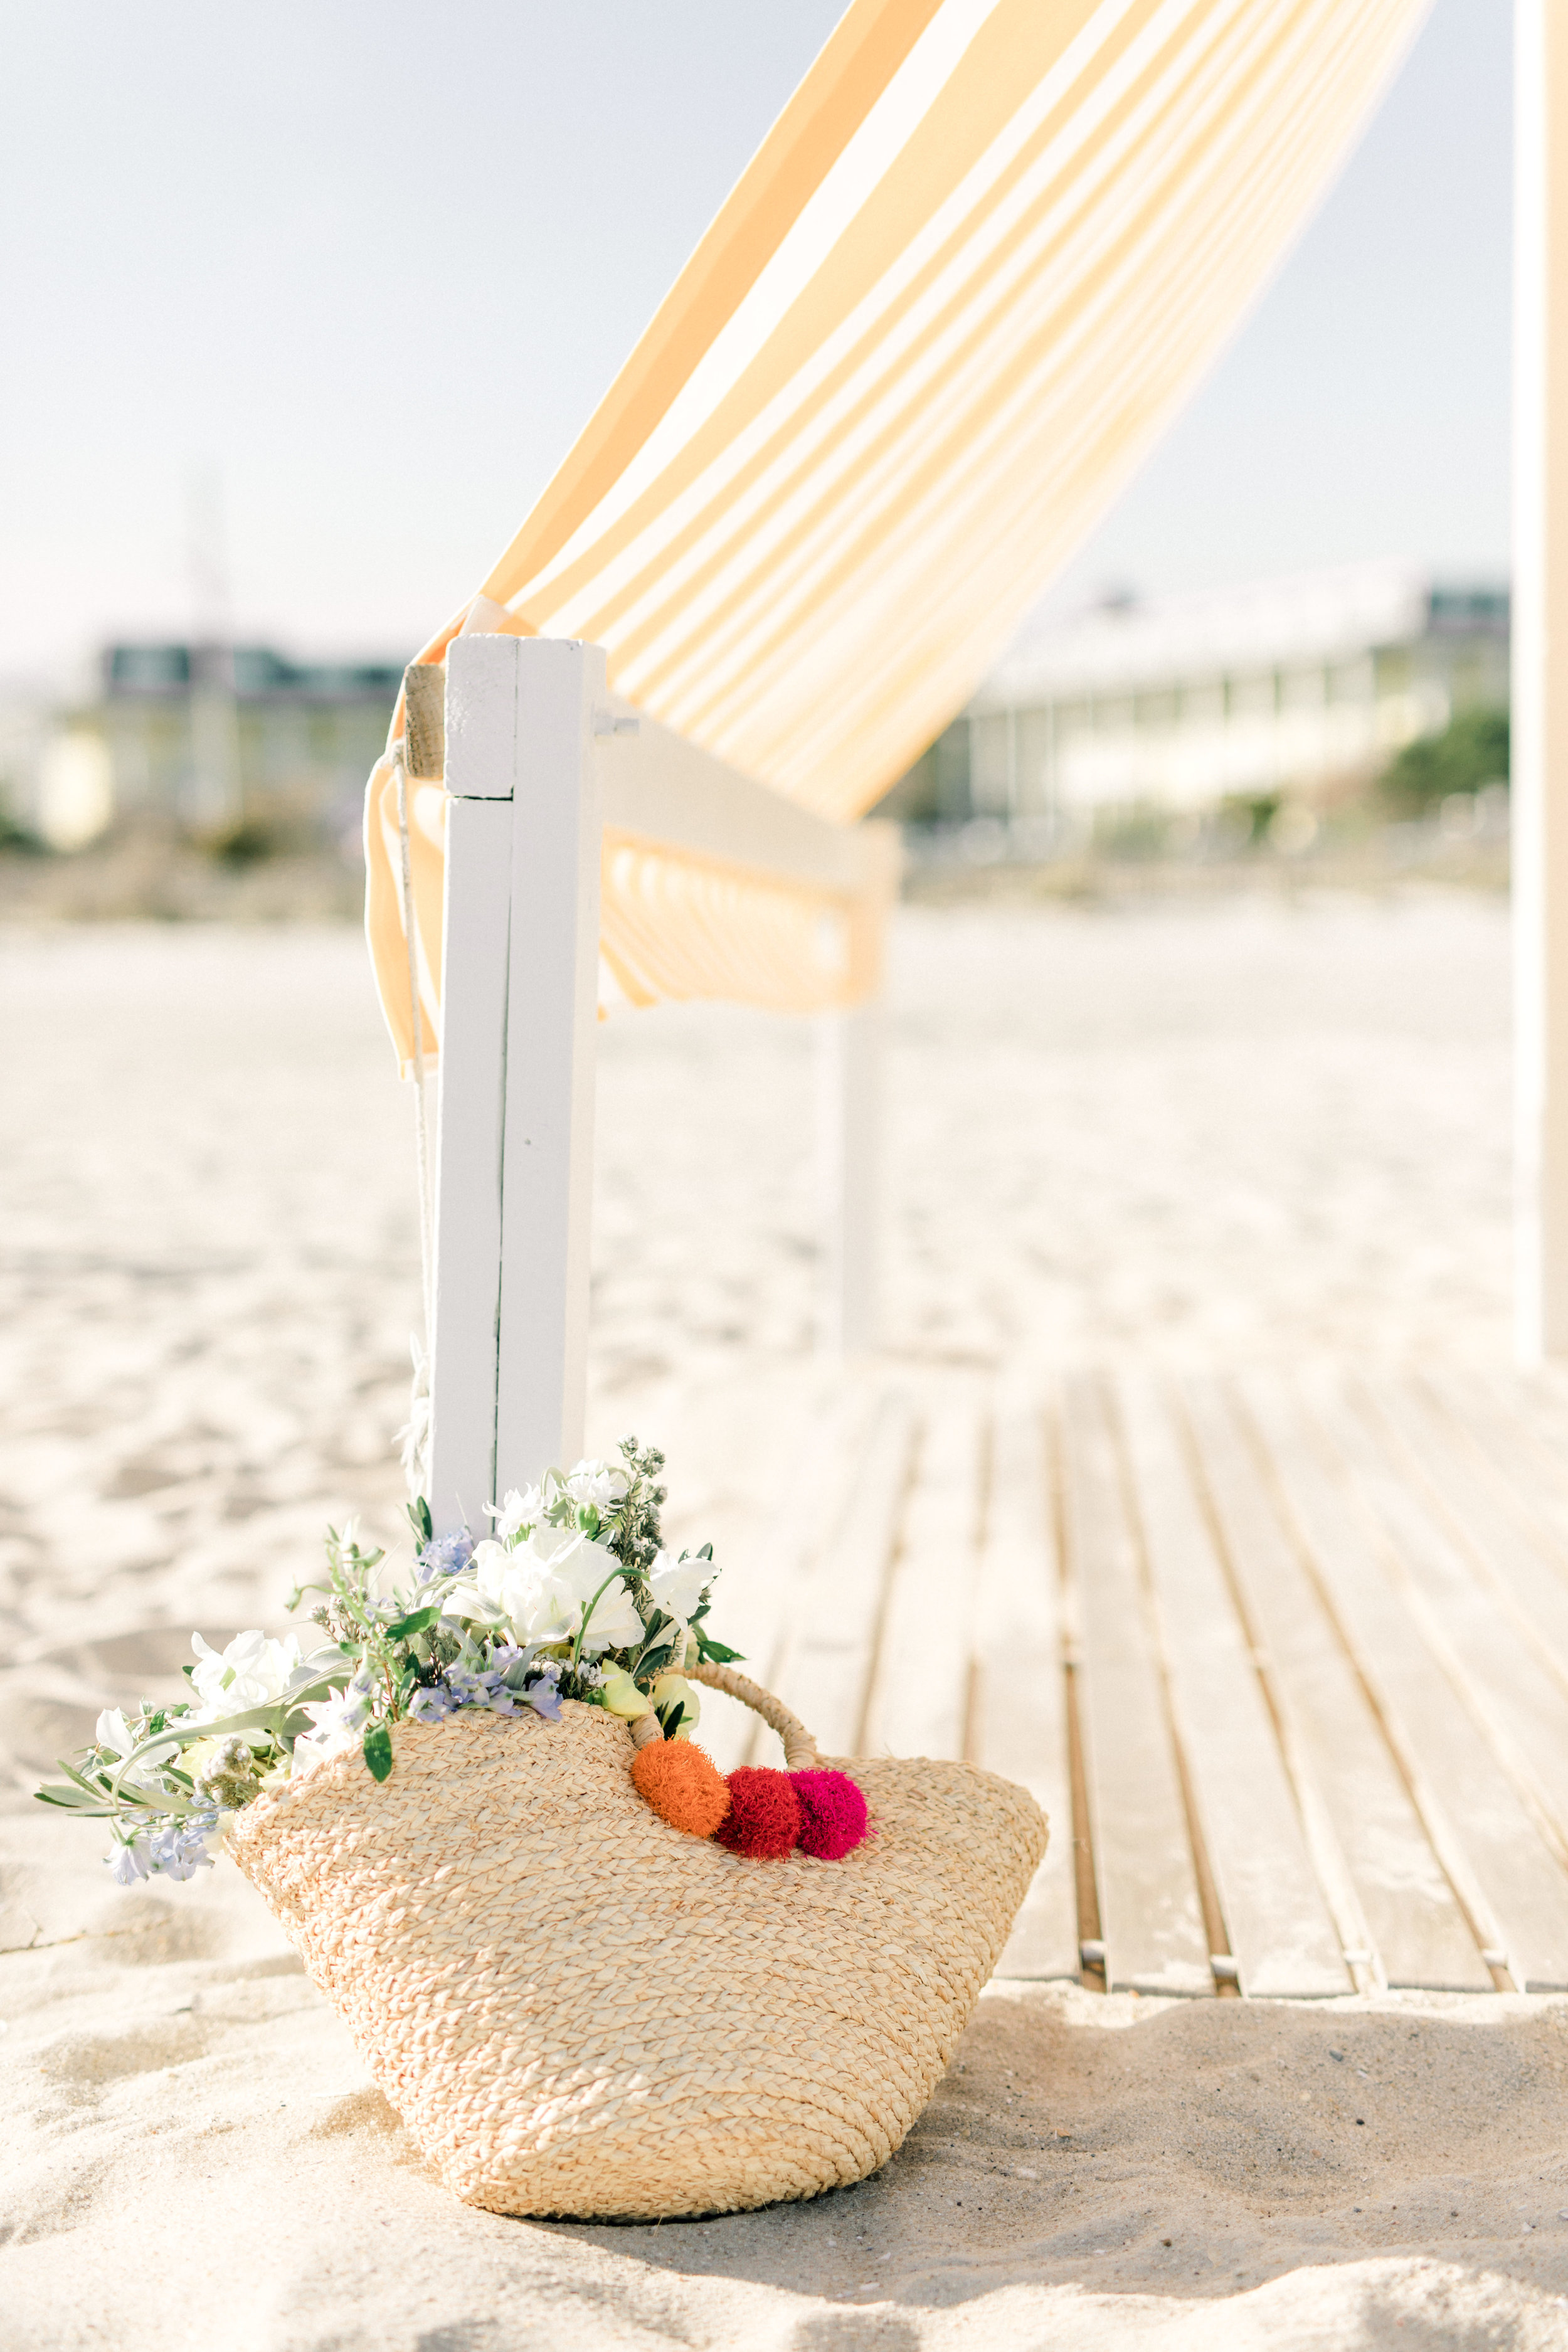 haley-richter-photography-clover-event-co-cape-may-new-jersey-wedding-elopement-at-congress-hall-sea-glass-inspired-054.jpg